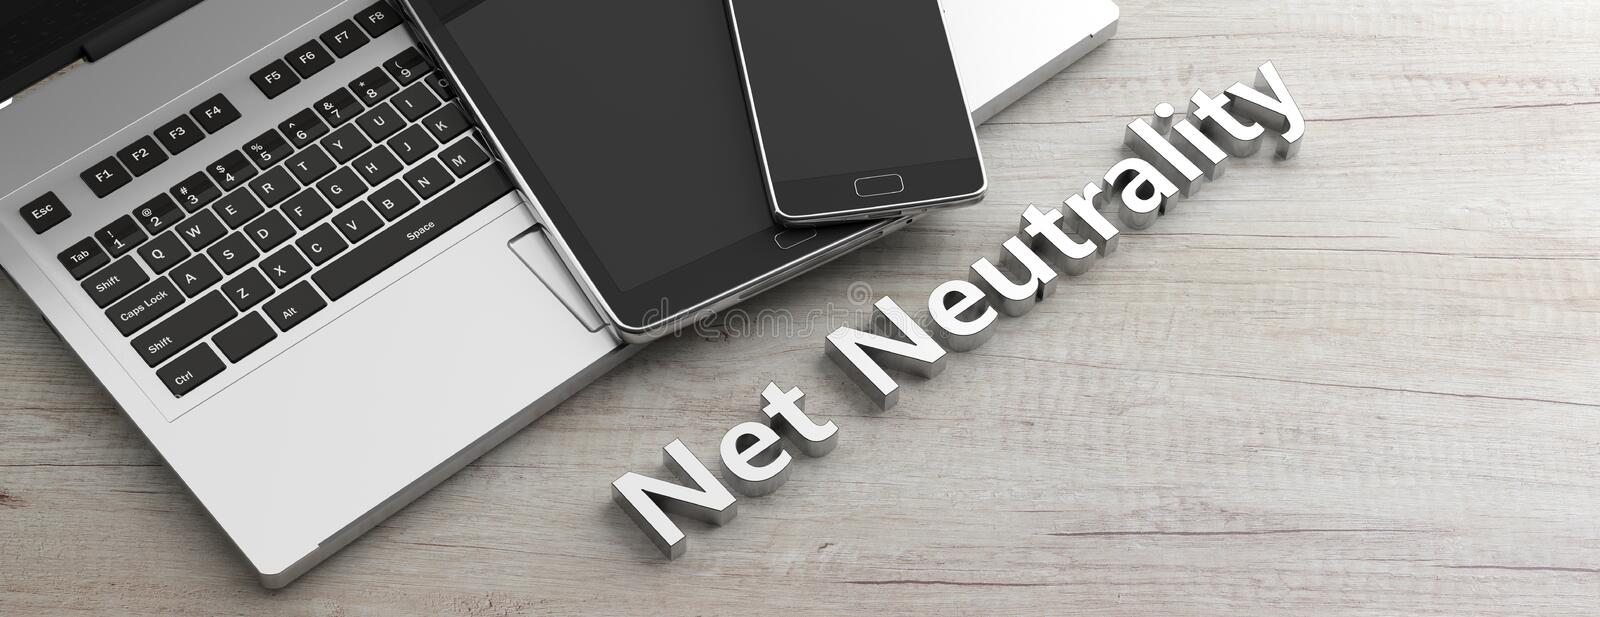 Mobile phone and tablet and a computer laptop on wooden background, copy space, net neutrality text. 3d illustration vector illustration